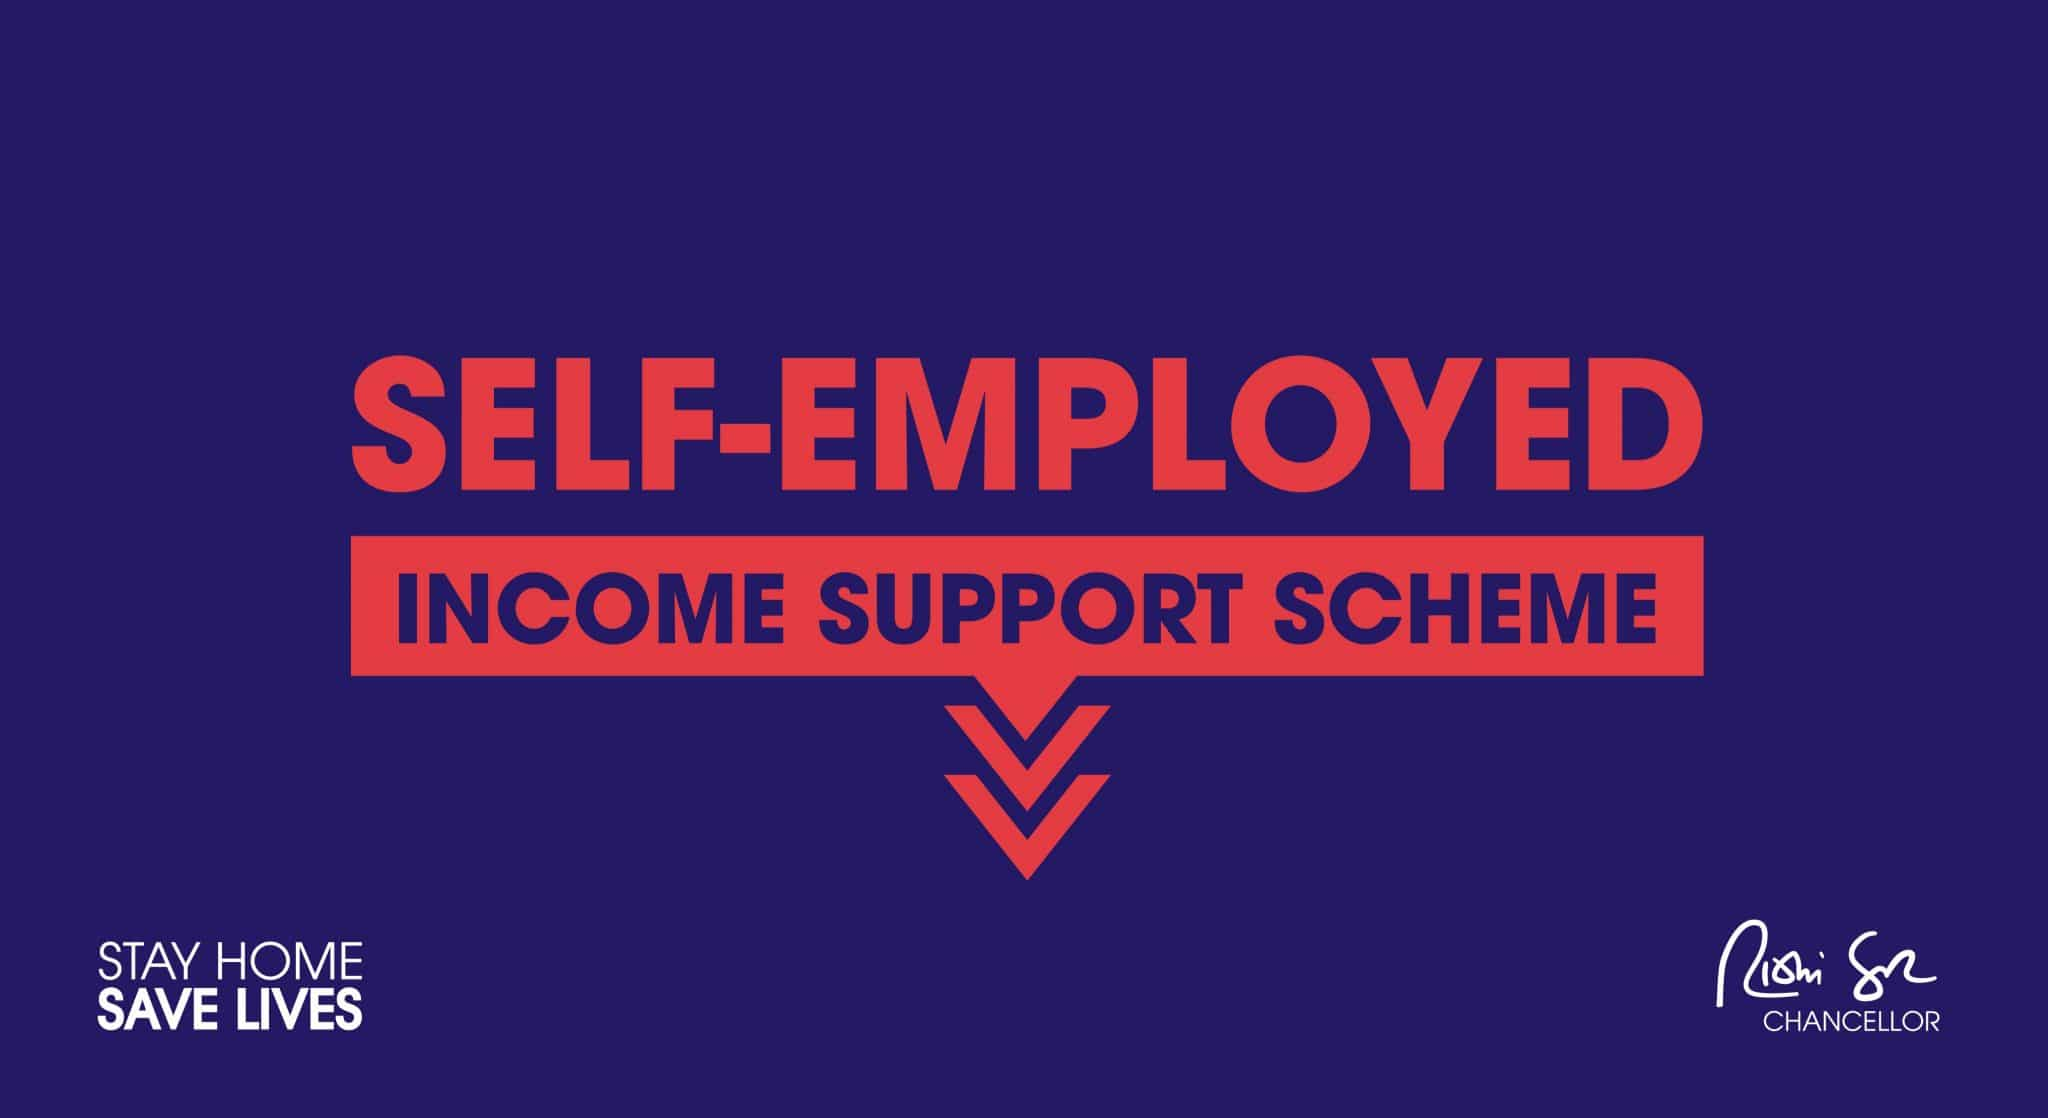 Self employment income support